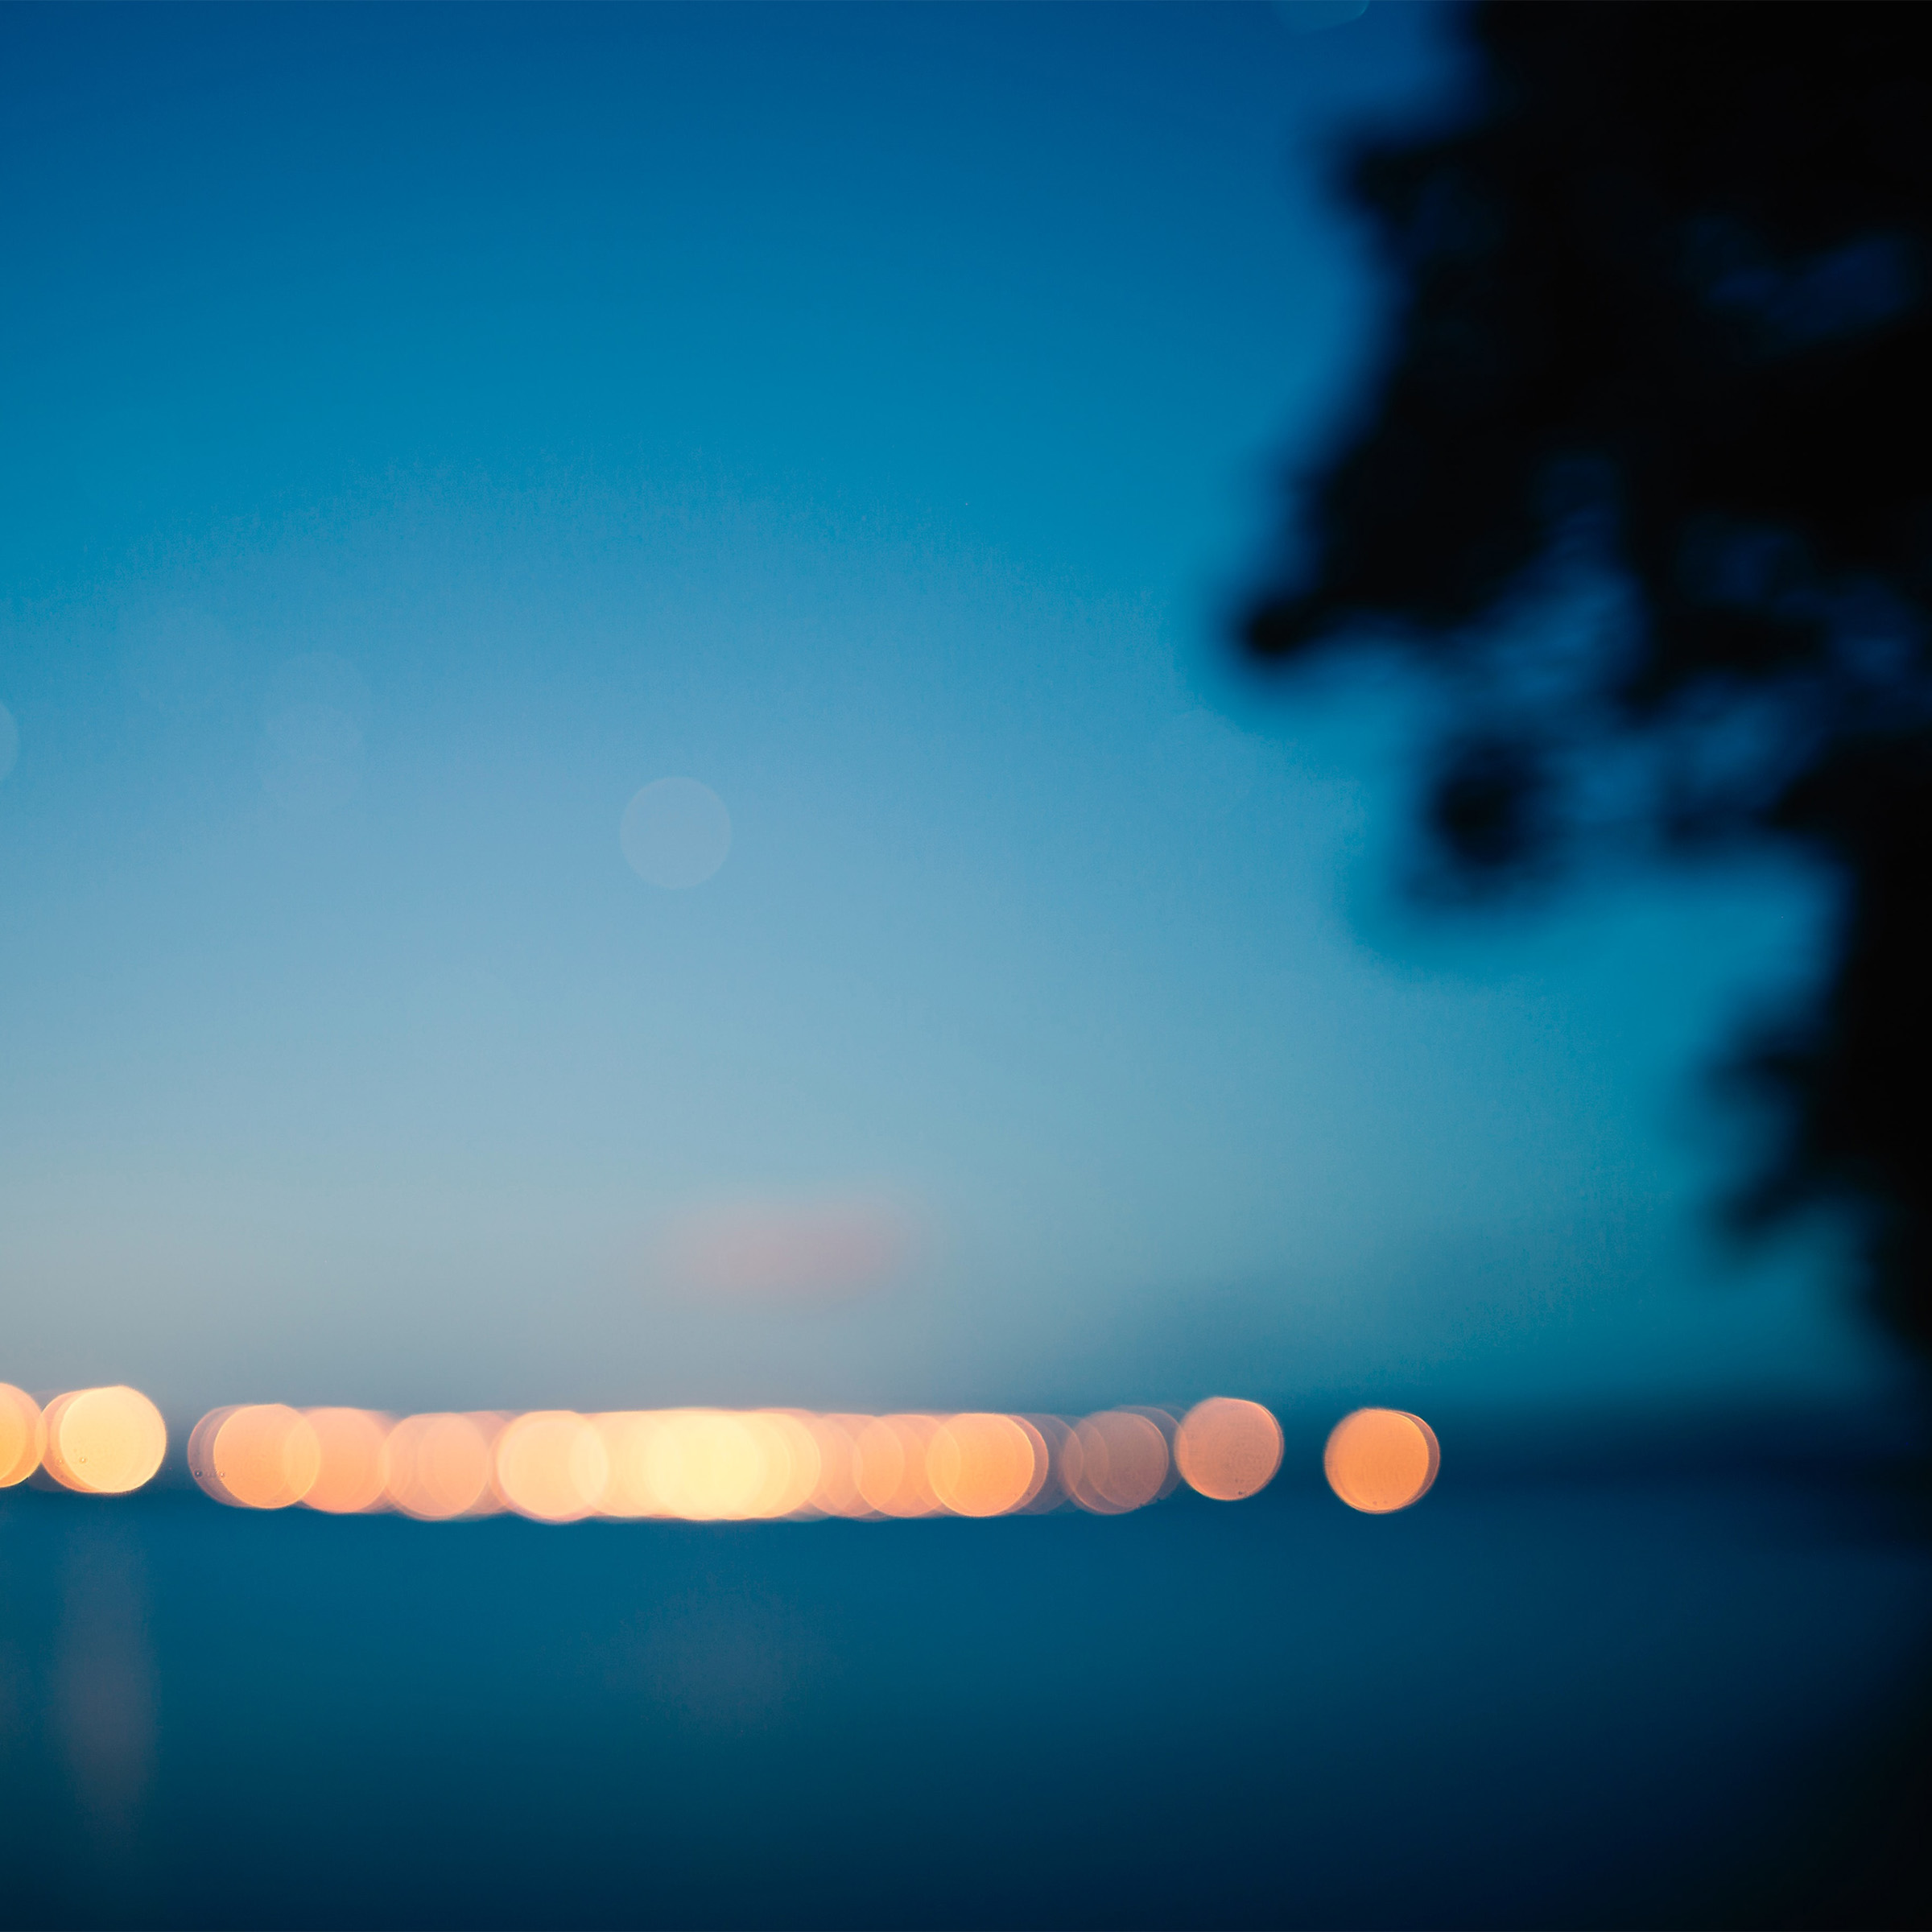 Blurred lights by the sea at dusk